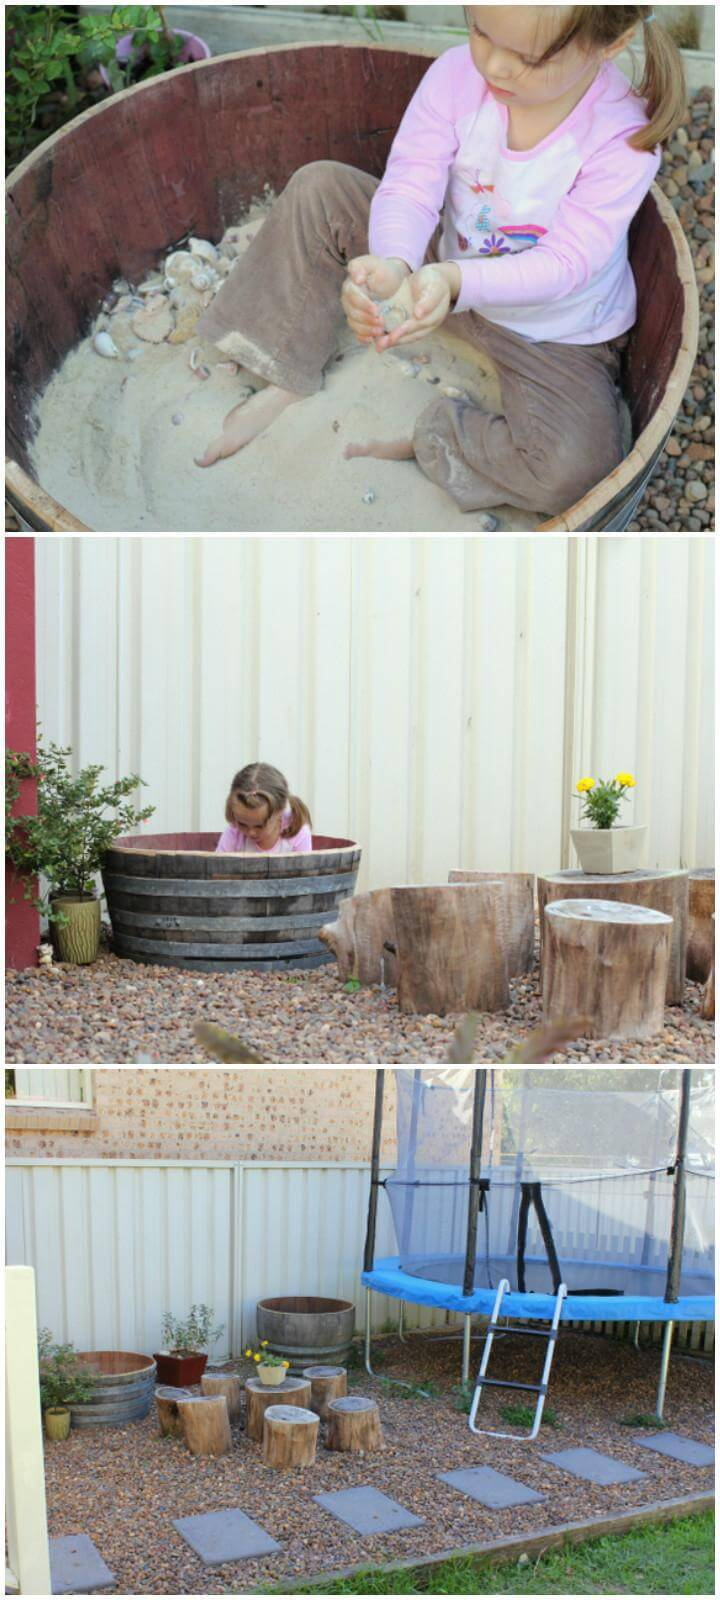 DIY Old Barrel Sandbox